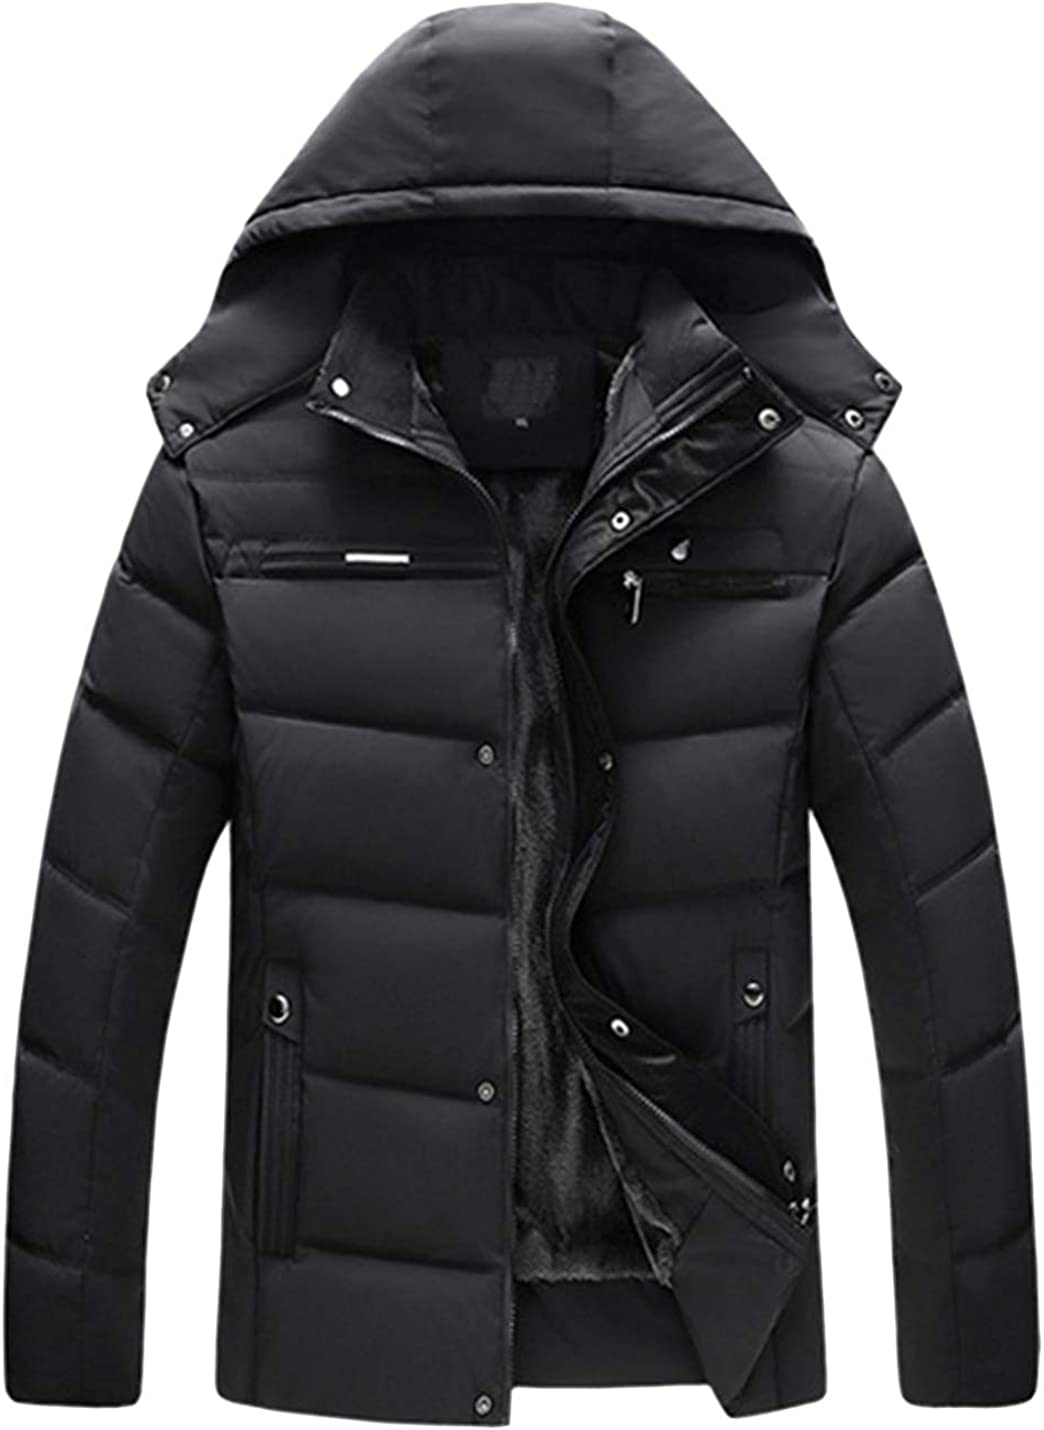 Yeokou Men's Casual Fleece Lined Cotton Padded Quilted Hooded Jacket Coat